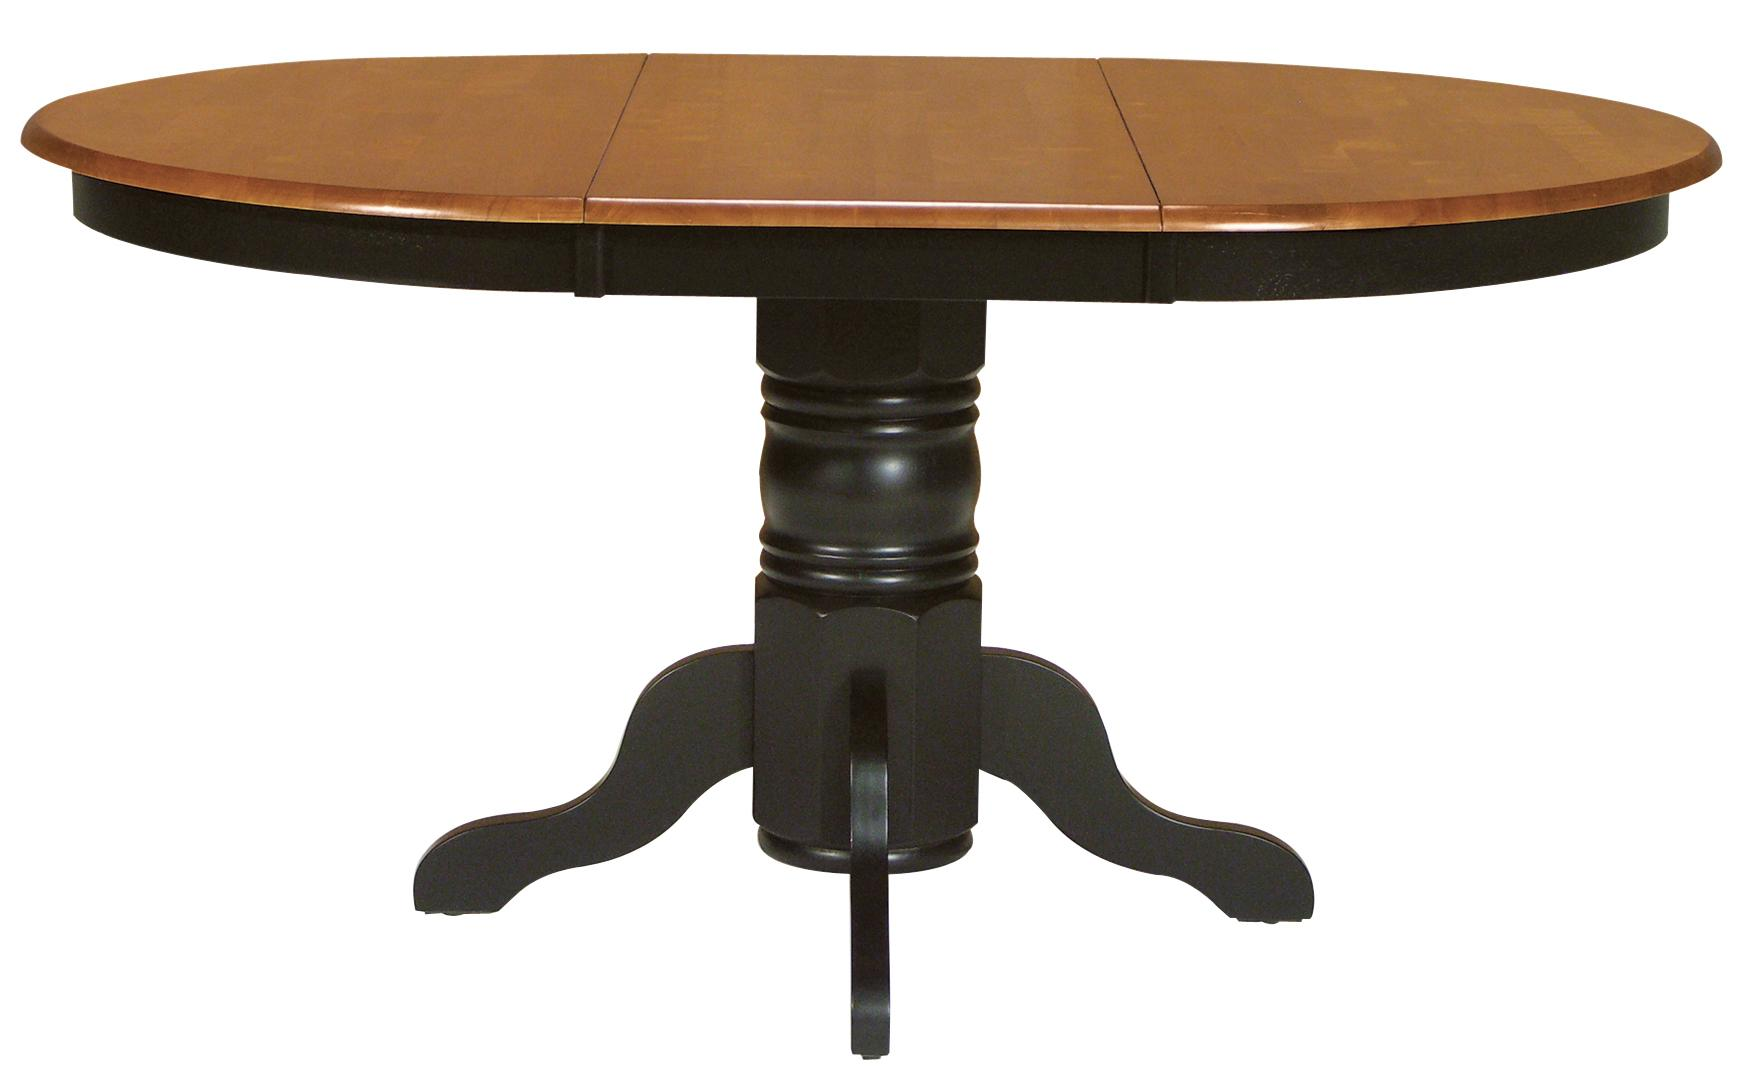 Toned Oval Dining Table With Turned Pedestal Base Part Of The Dining